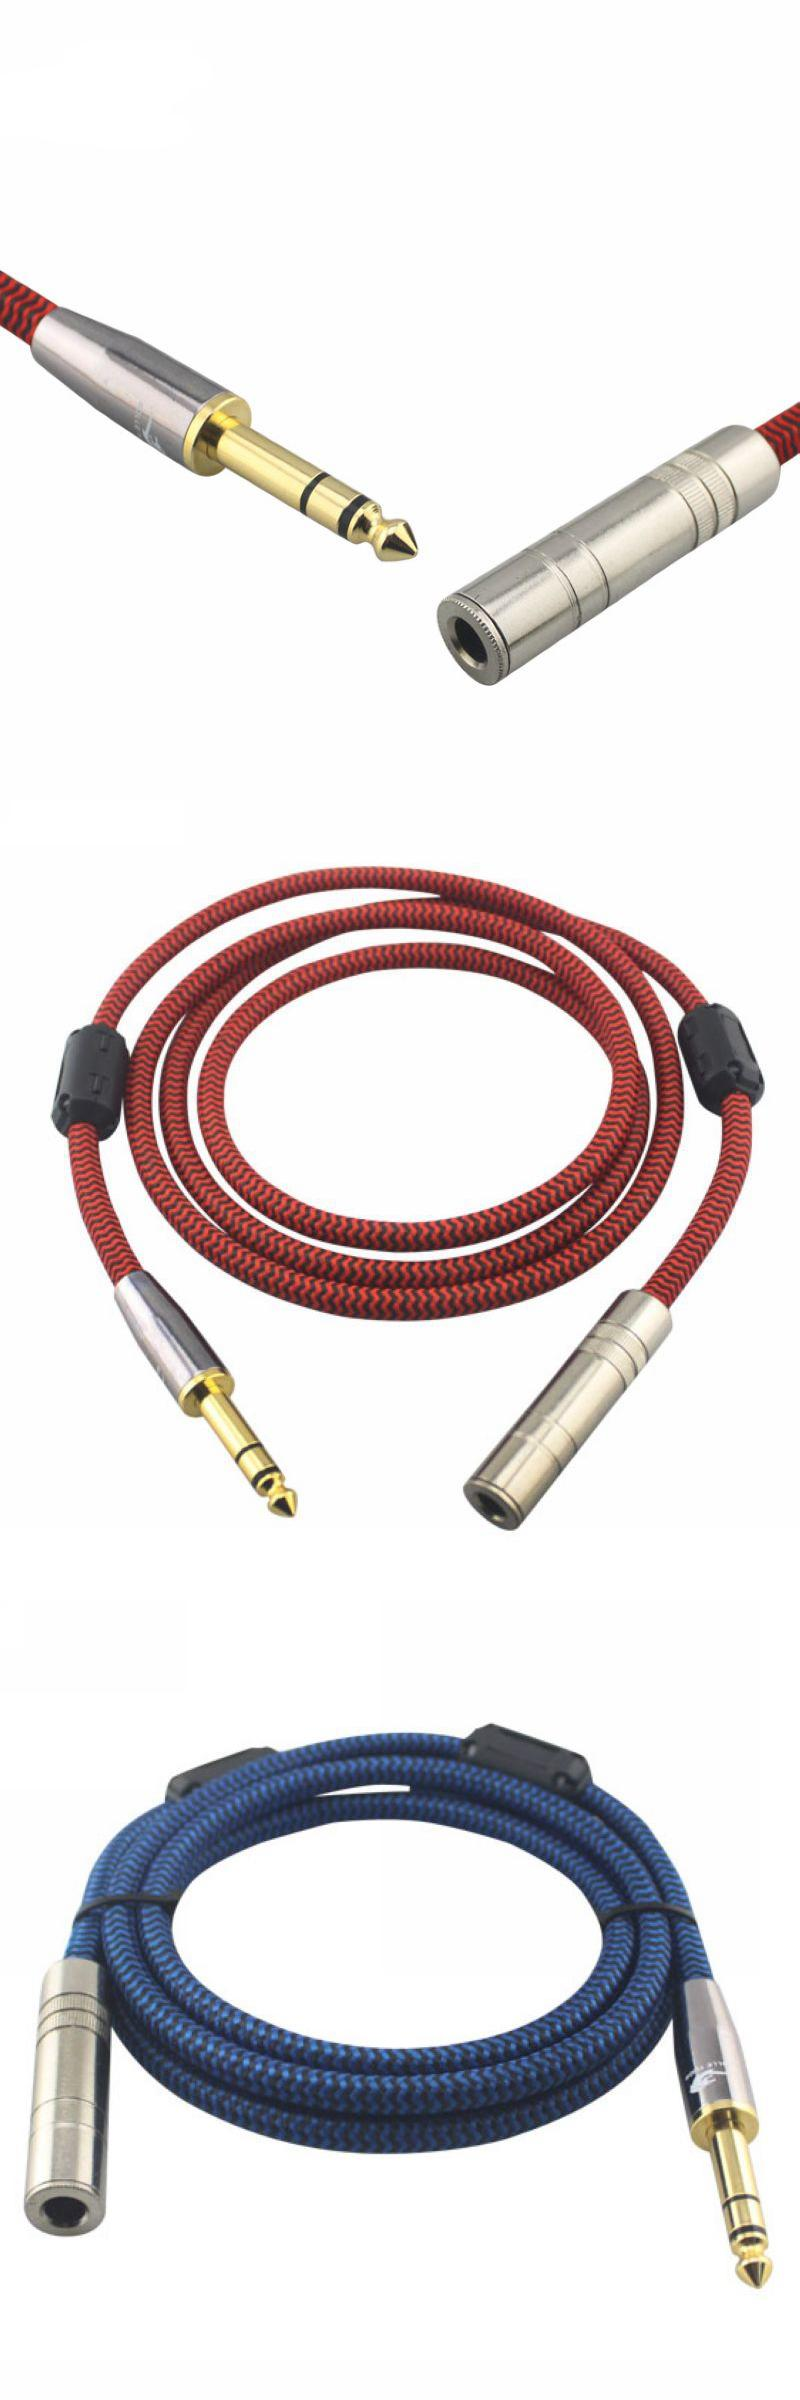 Visit To Buy Hifi Stereo Jack 6 35mm Male To Female 1 4 Trs Extension Cable Ofc Monitor Cable Braided 1m 2m 3m 5m 8m Advertis With Images Hifi Stereo Stuff To Buy